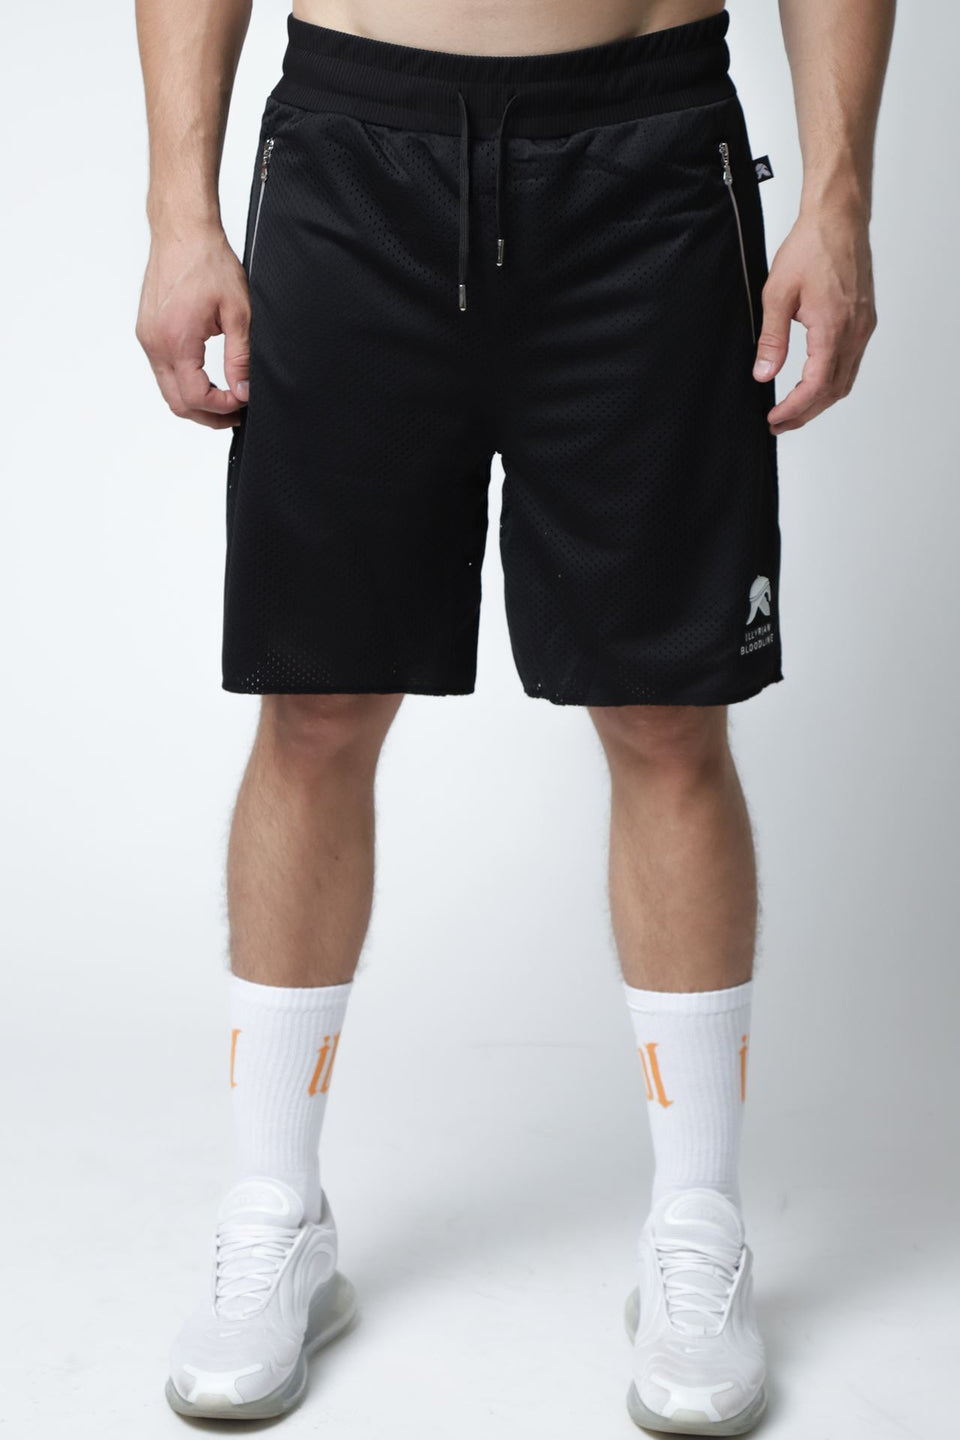 IBL Athletic Shorts